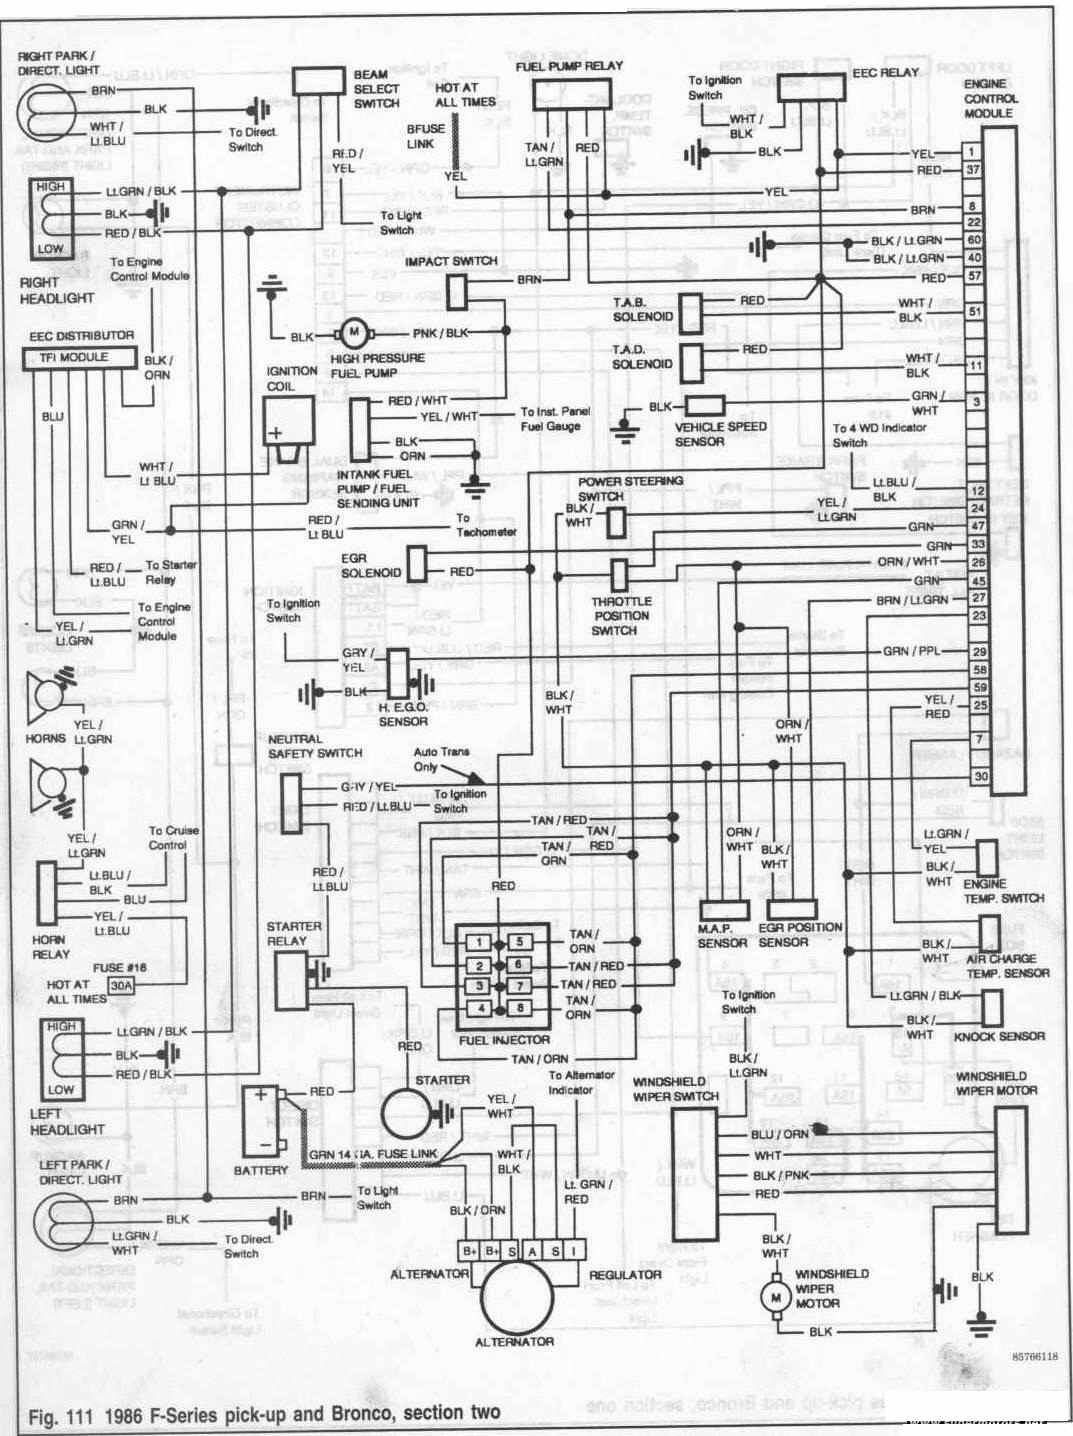 1981 Ford Bronco Wiring Diagram Opinions About Truck Fuse And F Series Pickup 1986 Engine Control Module All For 66 77